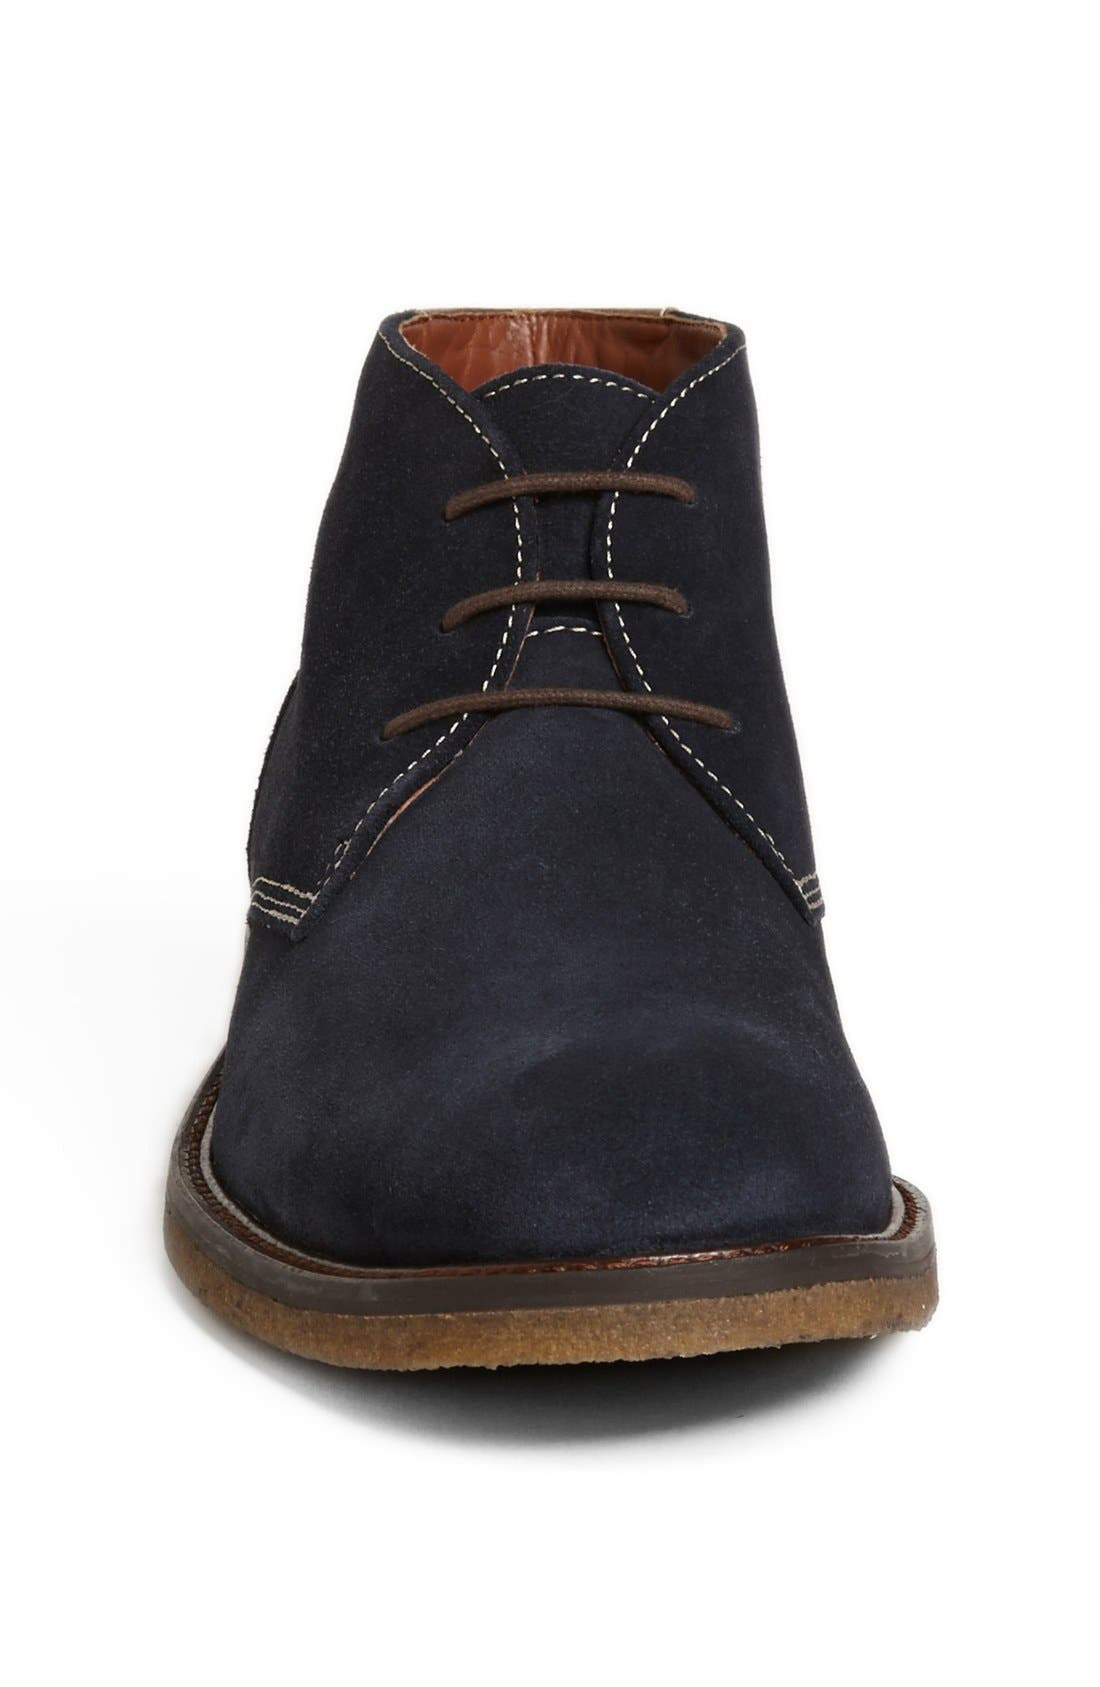 'Copeland' Suede Chukka Boot,                             Alternate thumbnail 26, color,